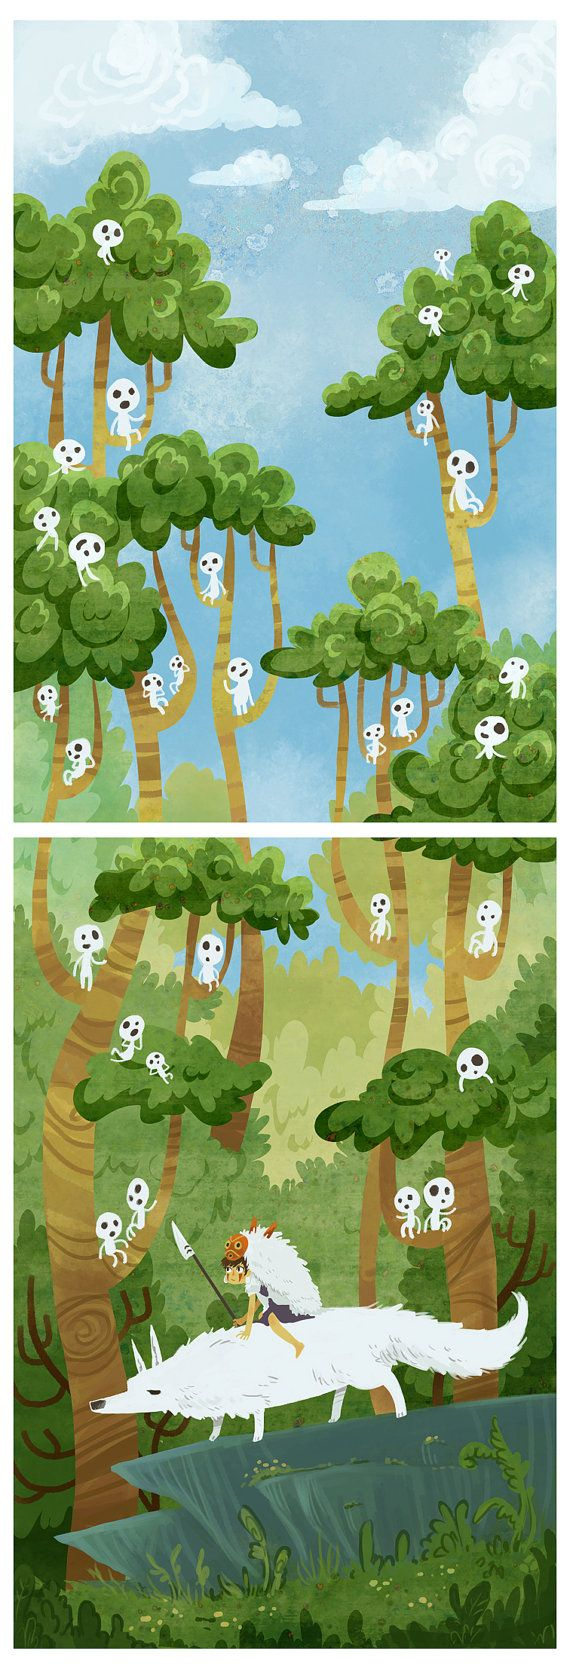 Princess of the Forest  2 poster print set by theGorgonist on Etsy, $40.00 - princess mononoke